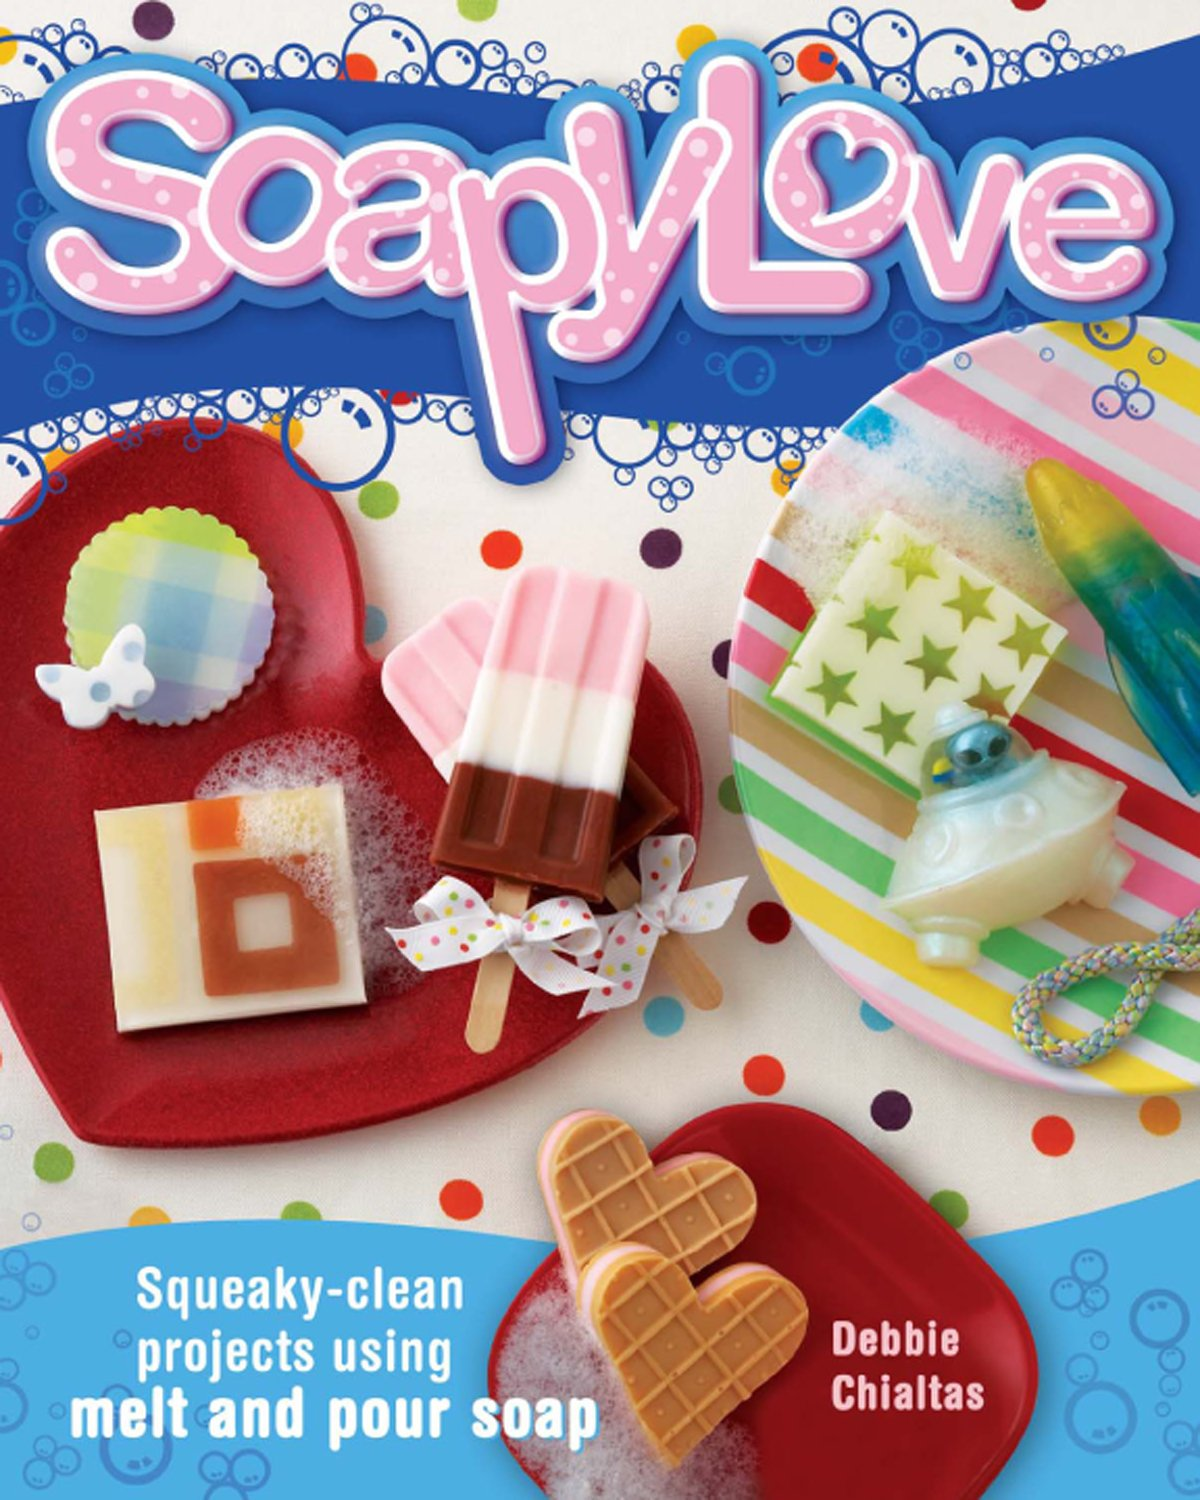 Read Online Soapylove: Squeaky-Clean Projects Using Melt-and-Pour Soap PDF